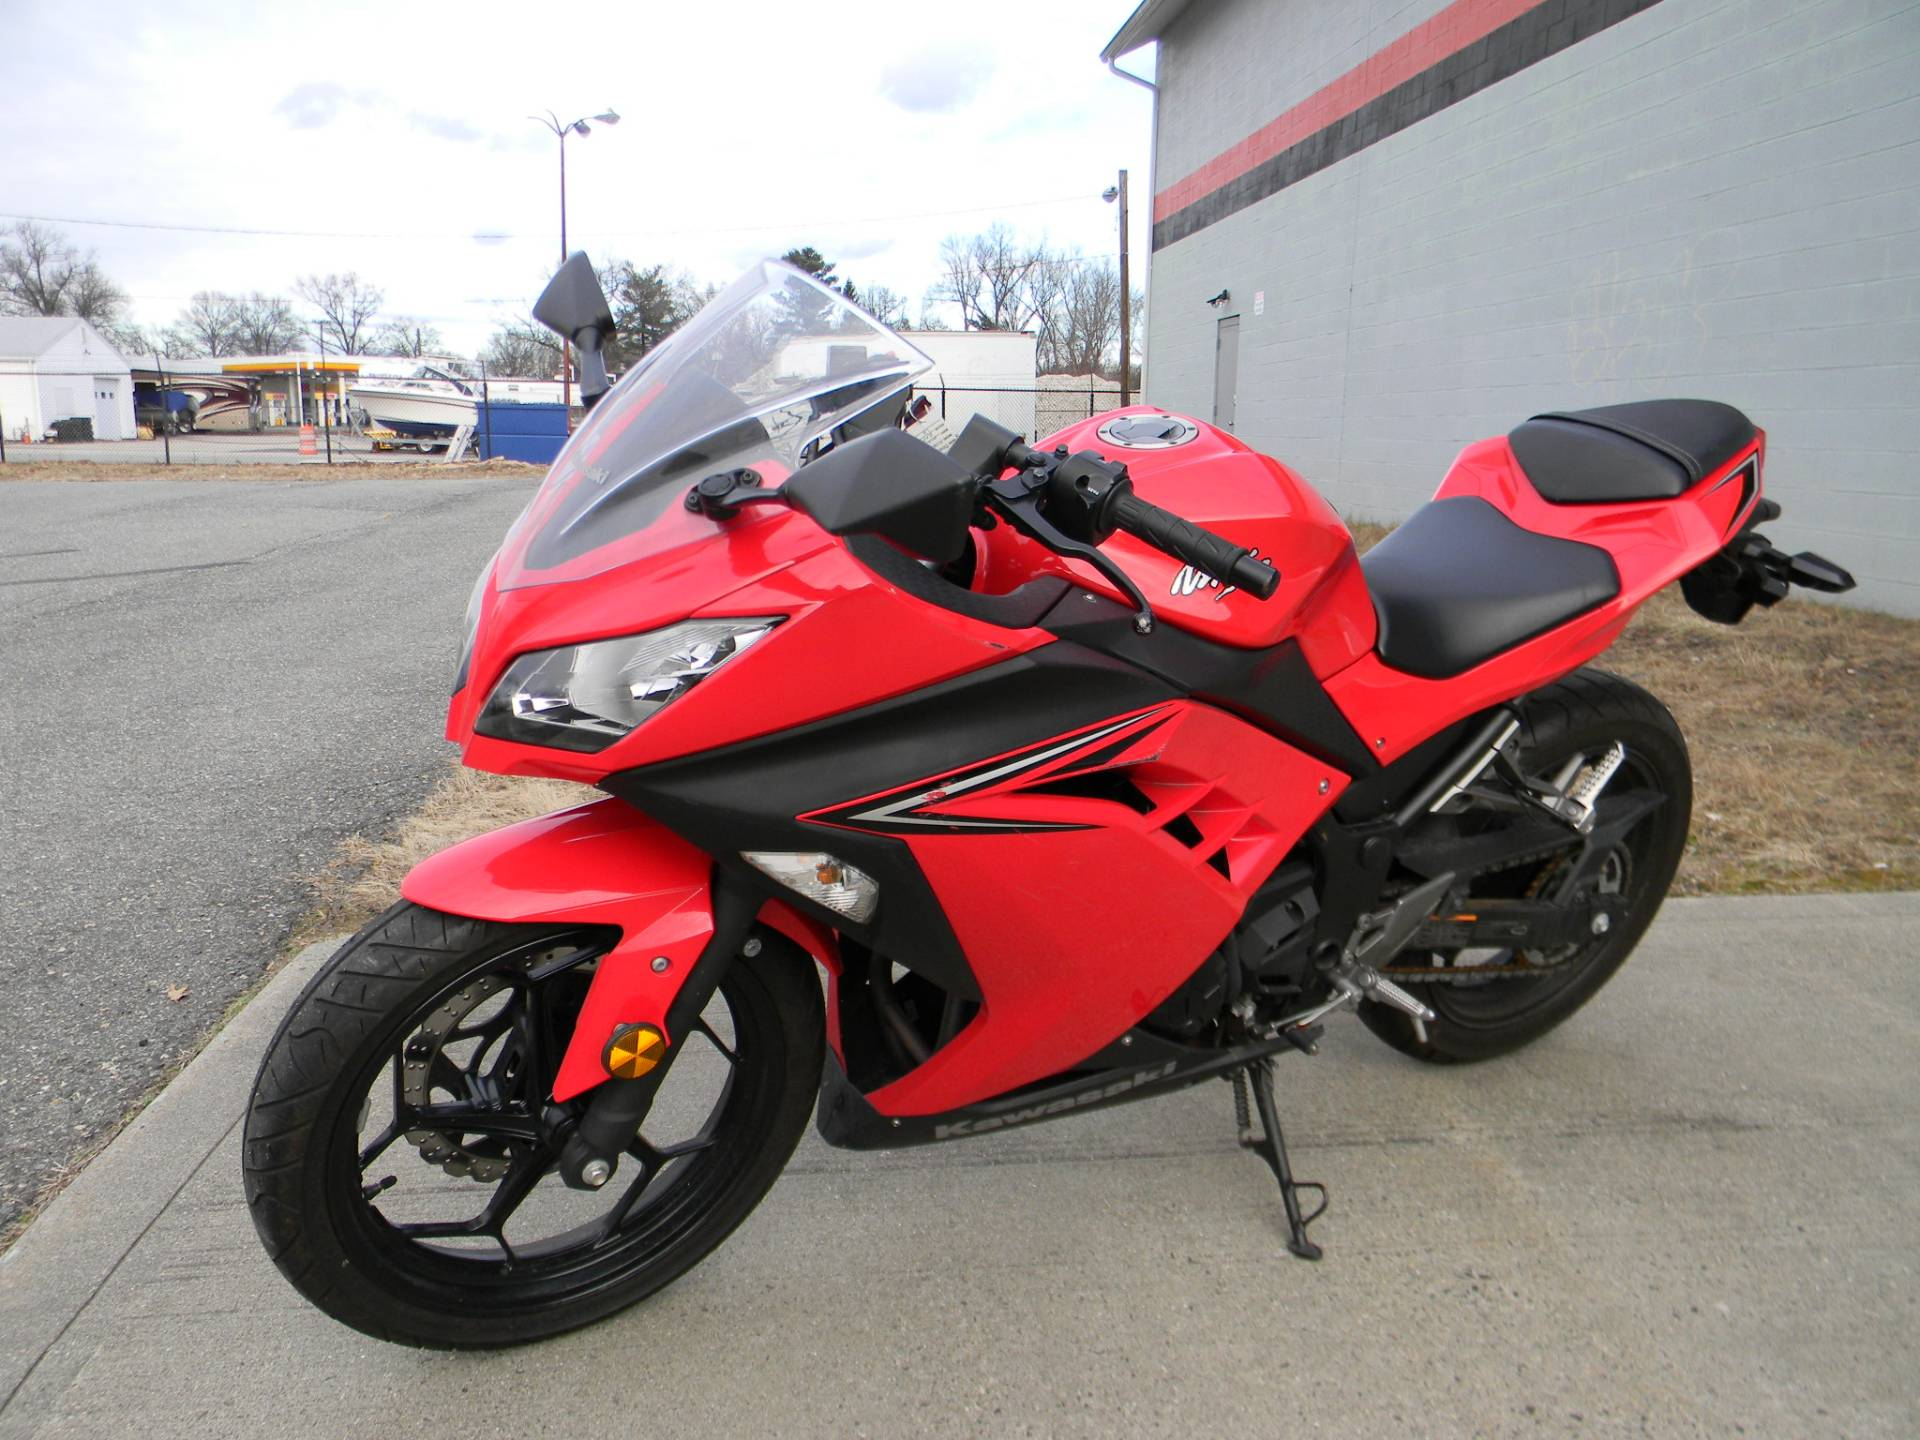 2016 Kawasaki Ninja 300 in Springfield, Massachusetts - Photo 5